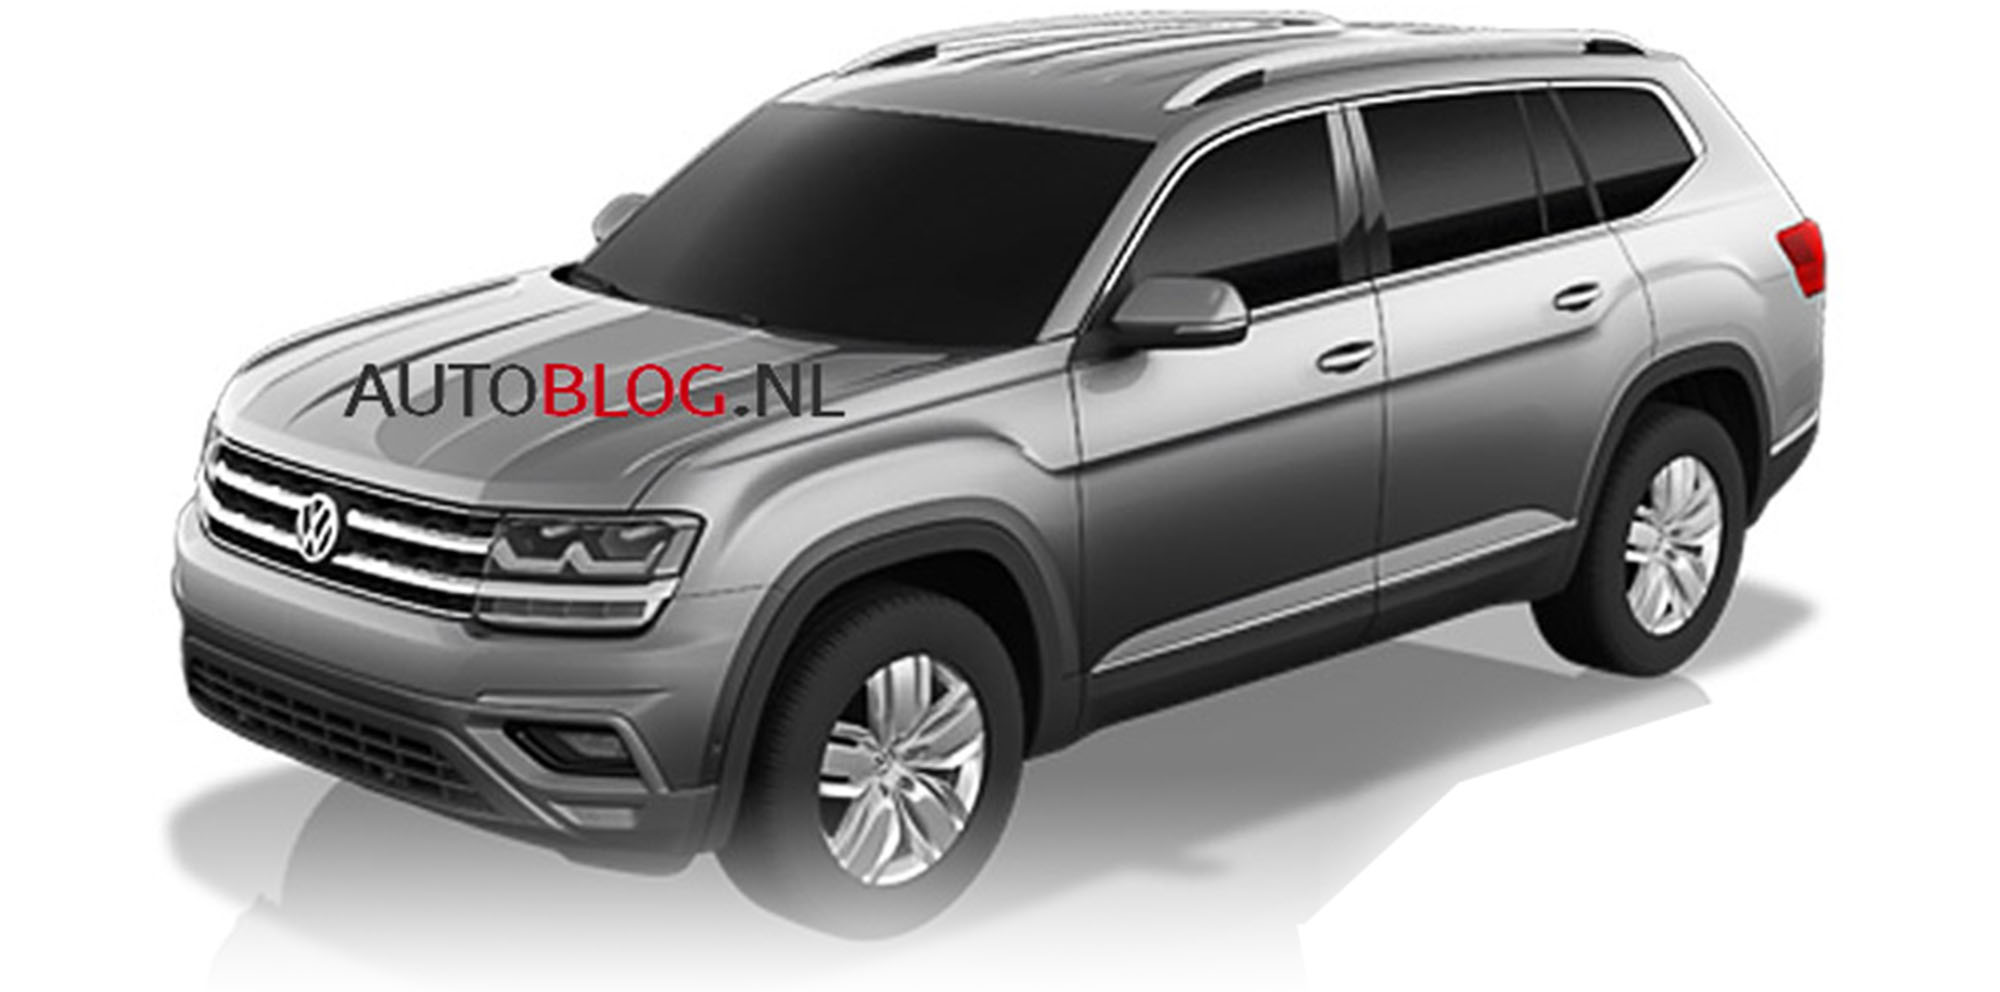 2017 volkswagen atlas production crossblue suv to debut end of october photos 1 of 4. Black Bedroom Furniture Sets. Home Design Ideas